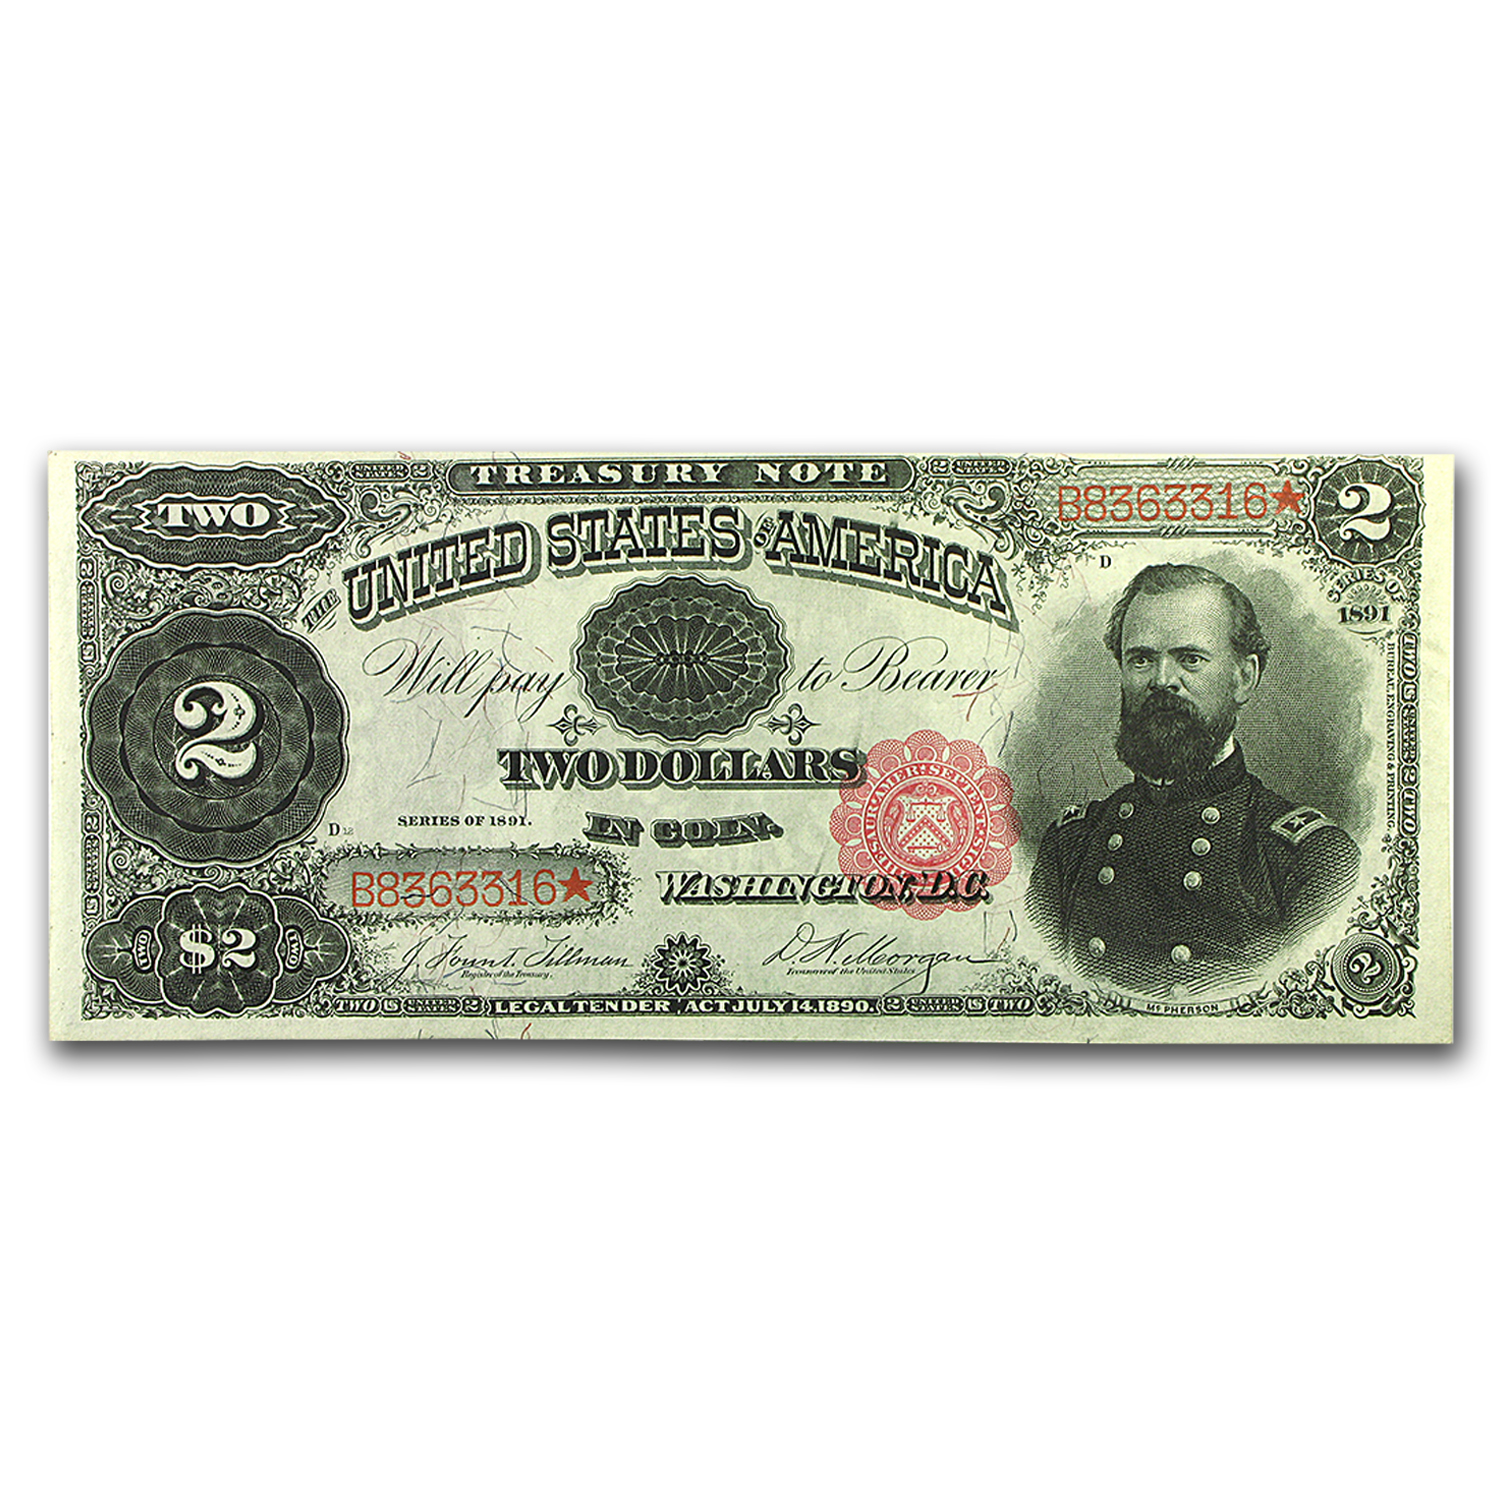 1891 $2.00 Treasury Note CU